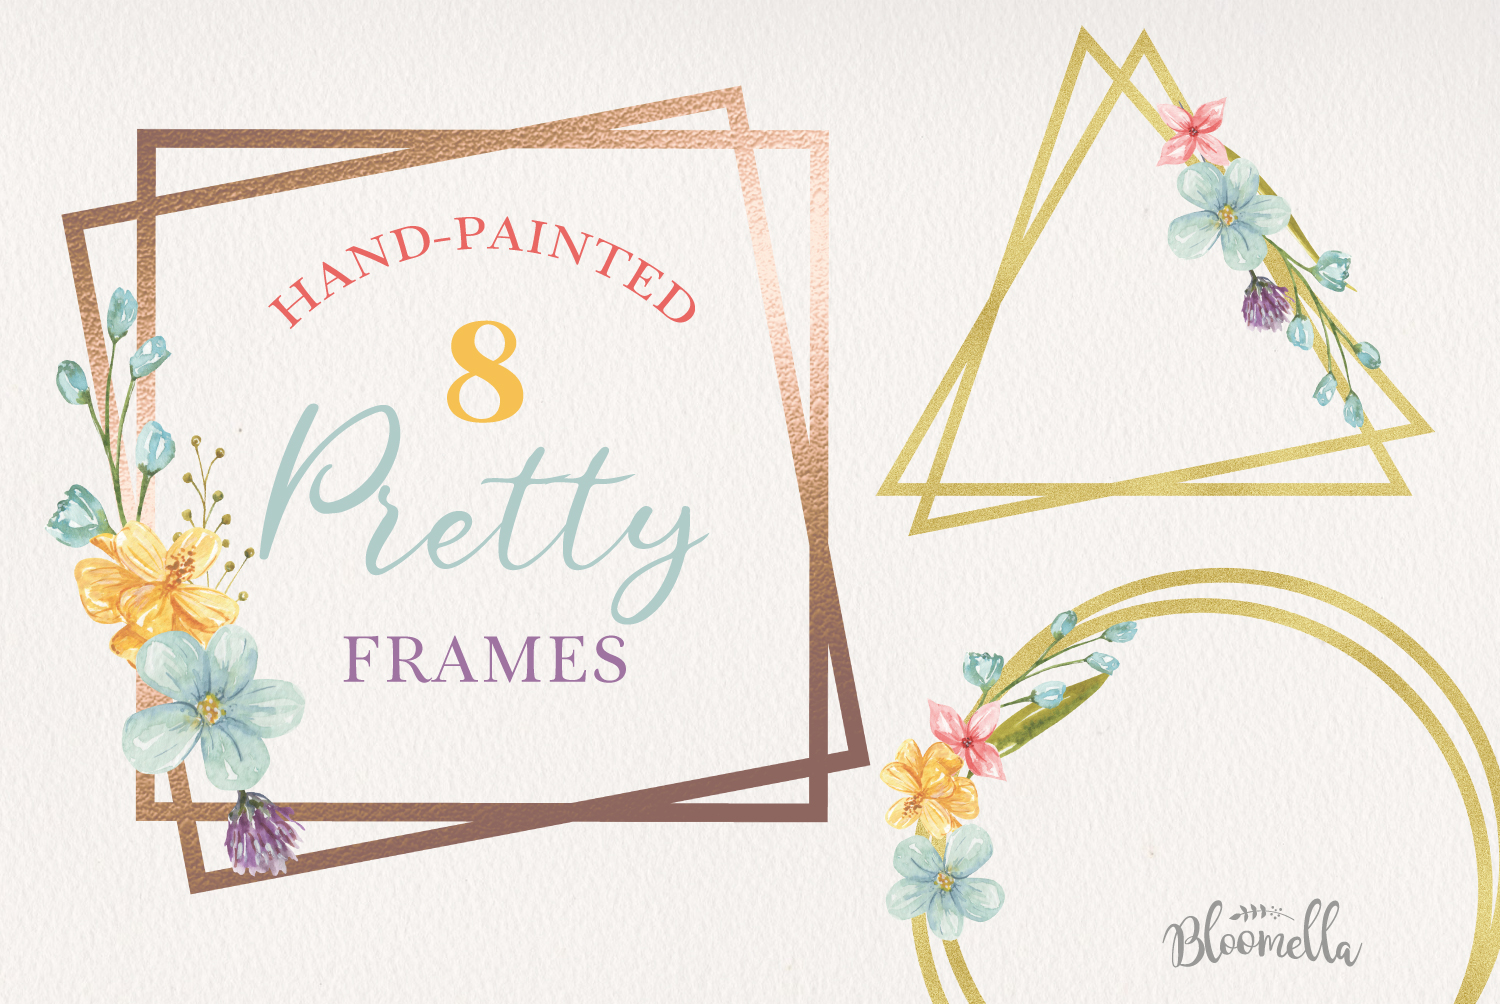 8 Flowers Gold Frames Leaves Watercolor Set Foliage Borders example image 1